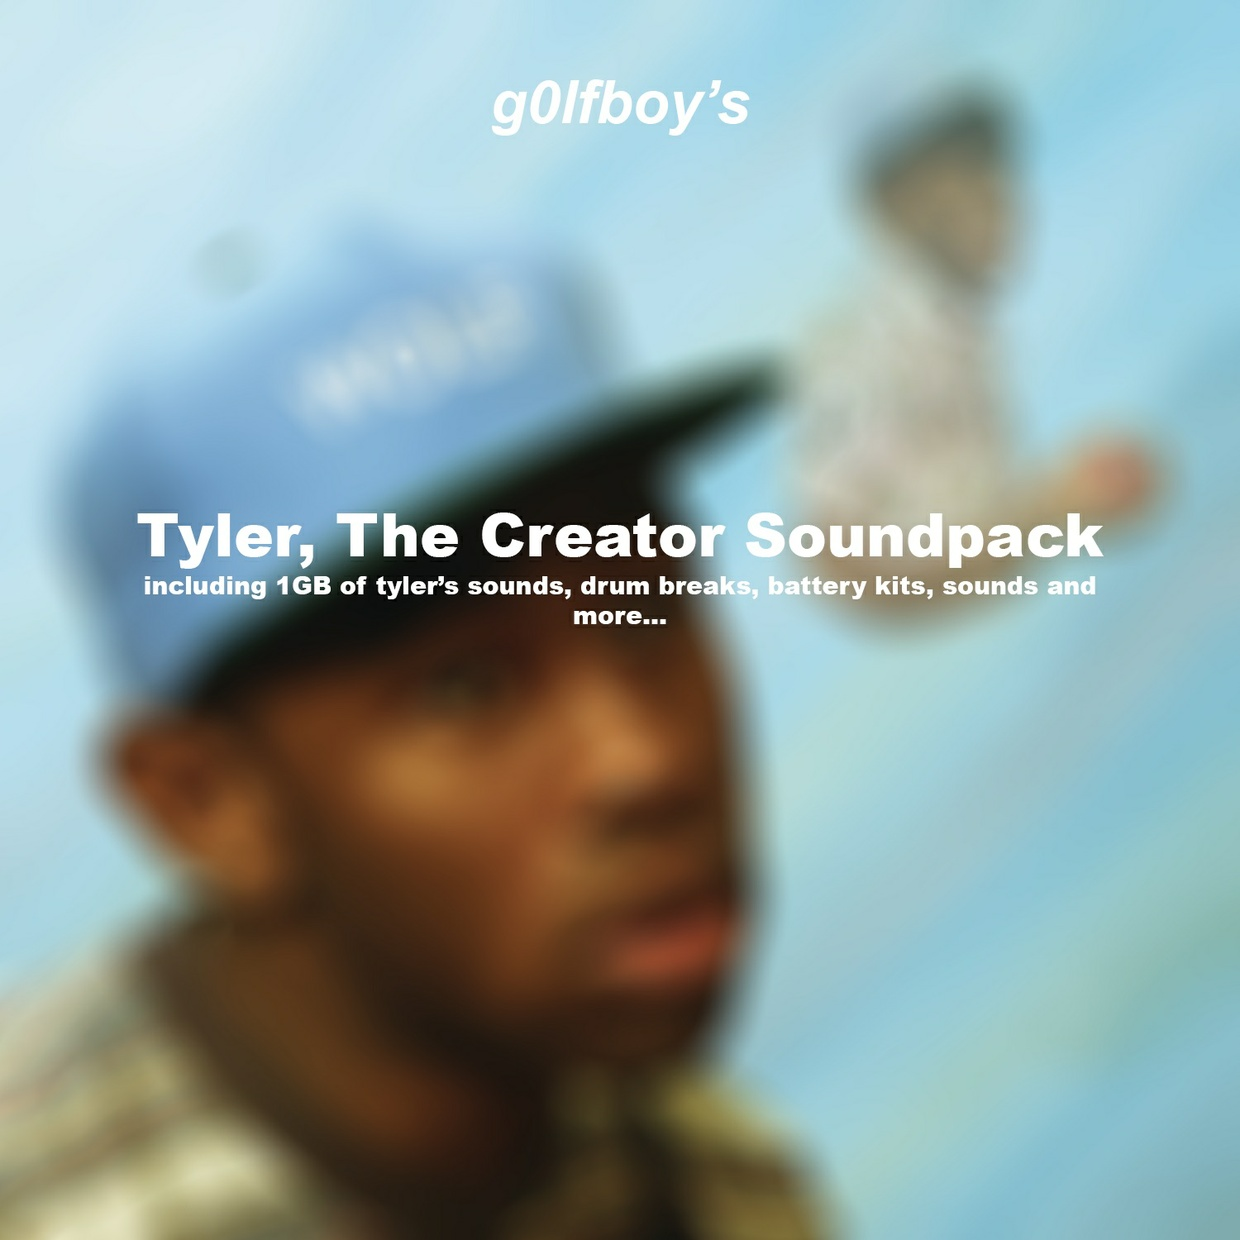 g0lfboy's Tyler, The Creator Soundpack